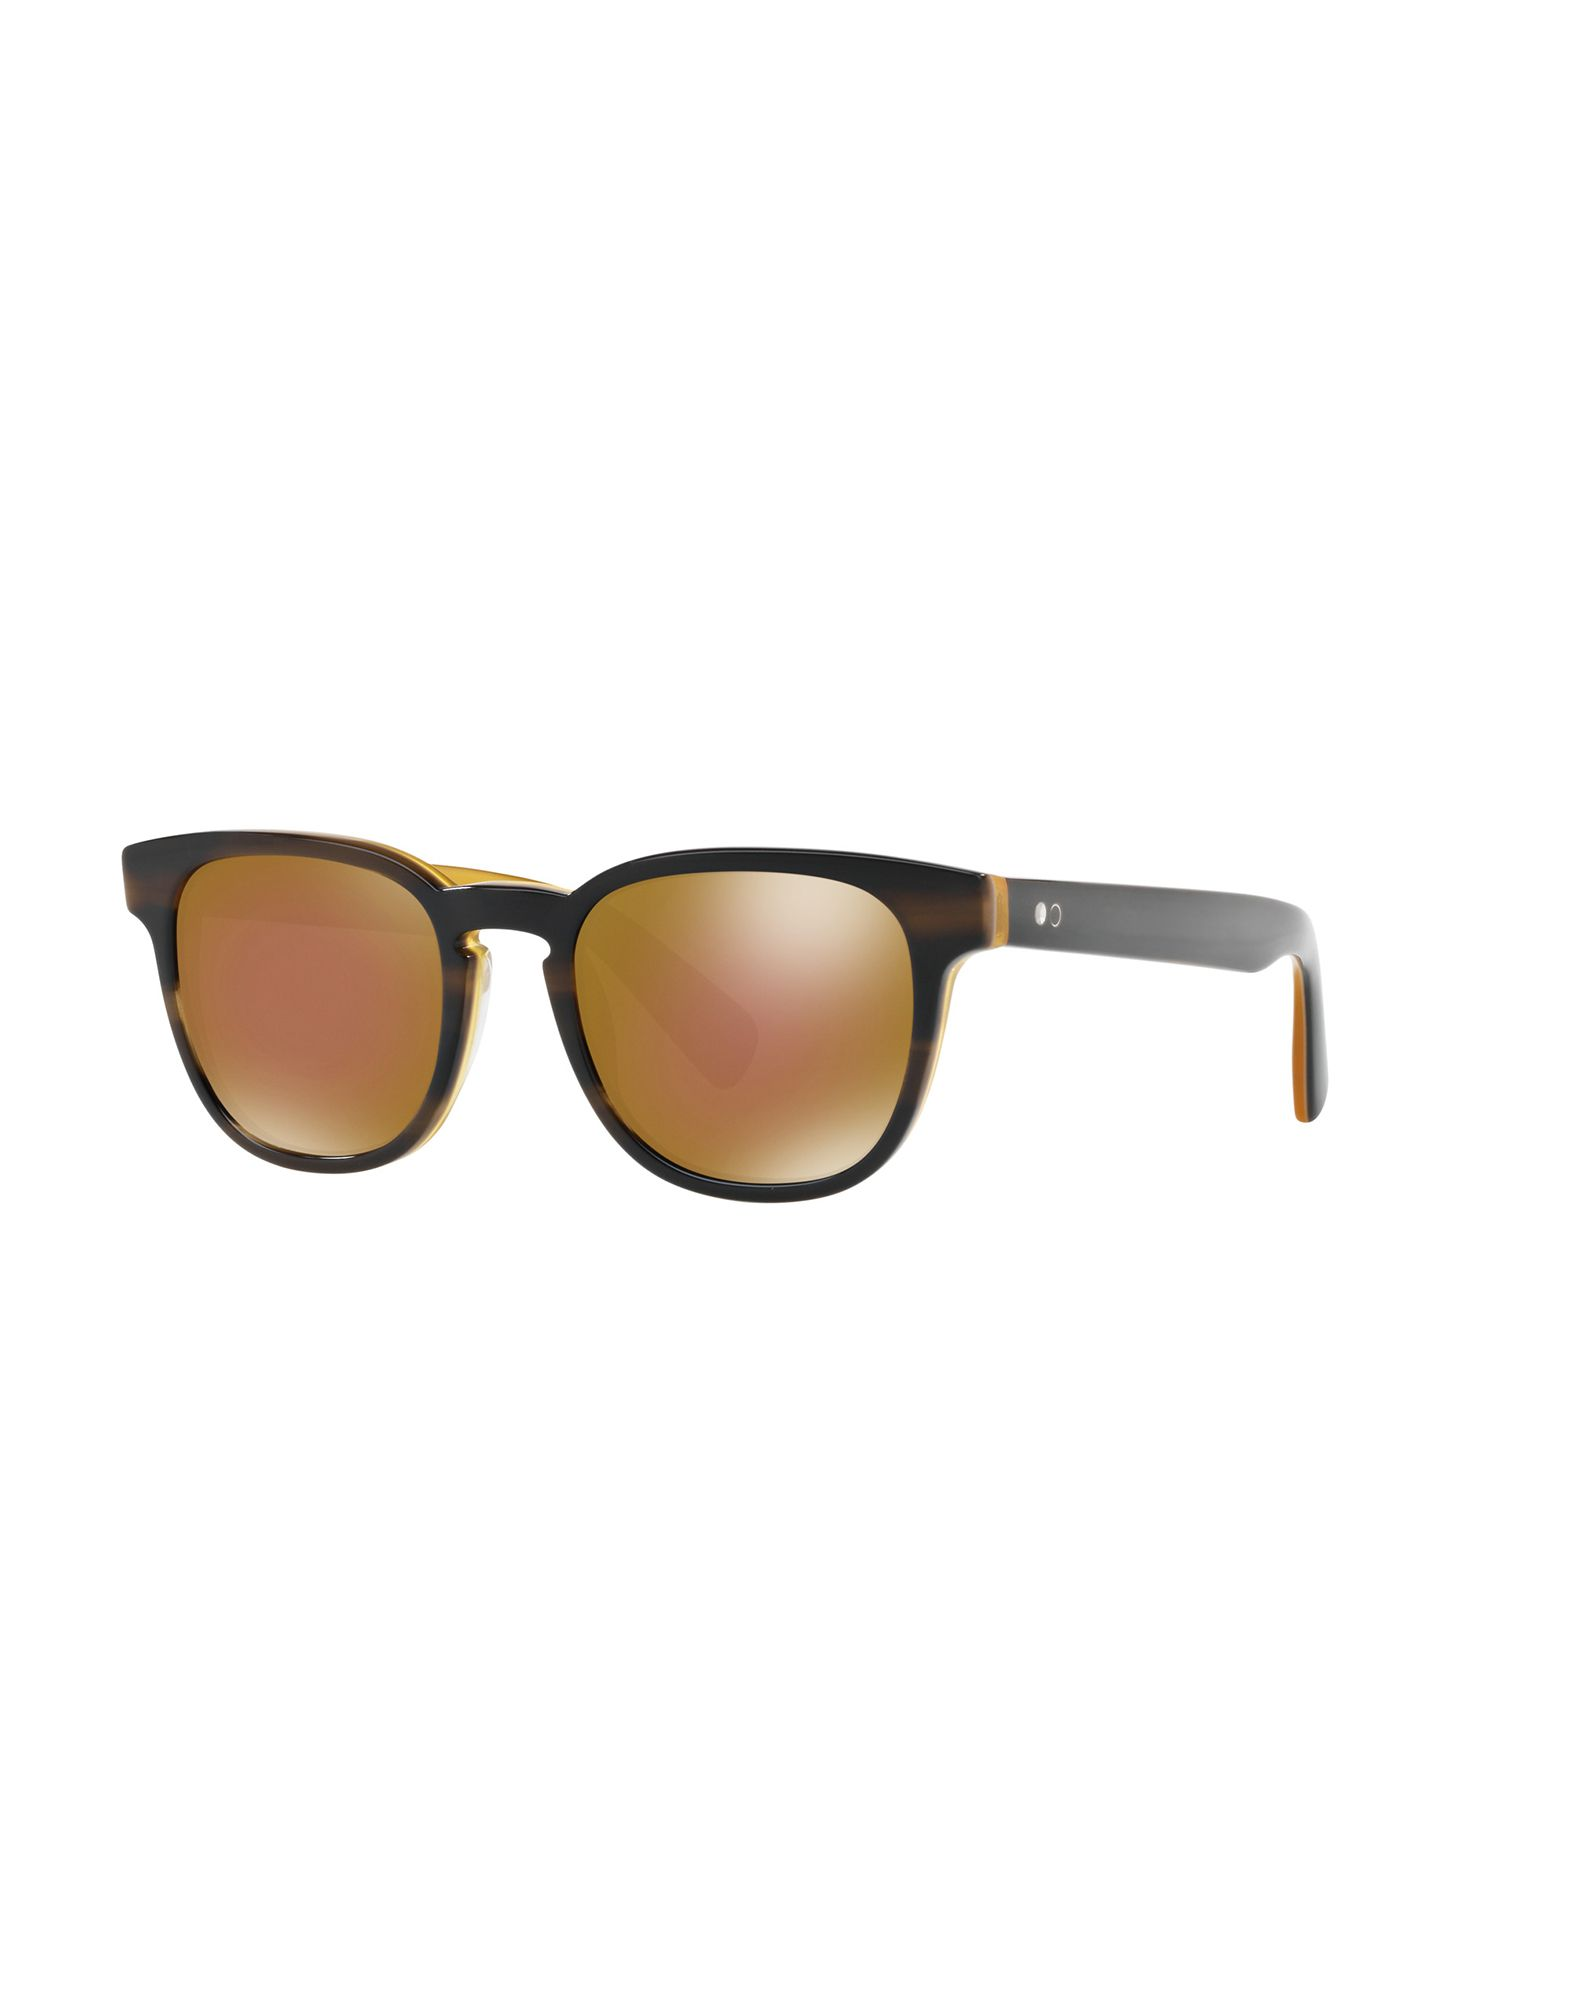 Occhiali Da Sole Paul Smith Pm8230su Hadrian Sun - Uomo - Acquista online su